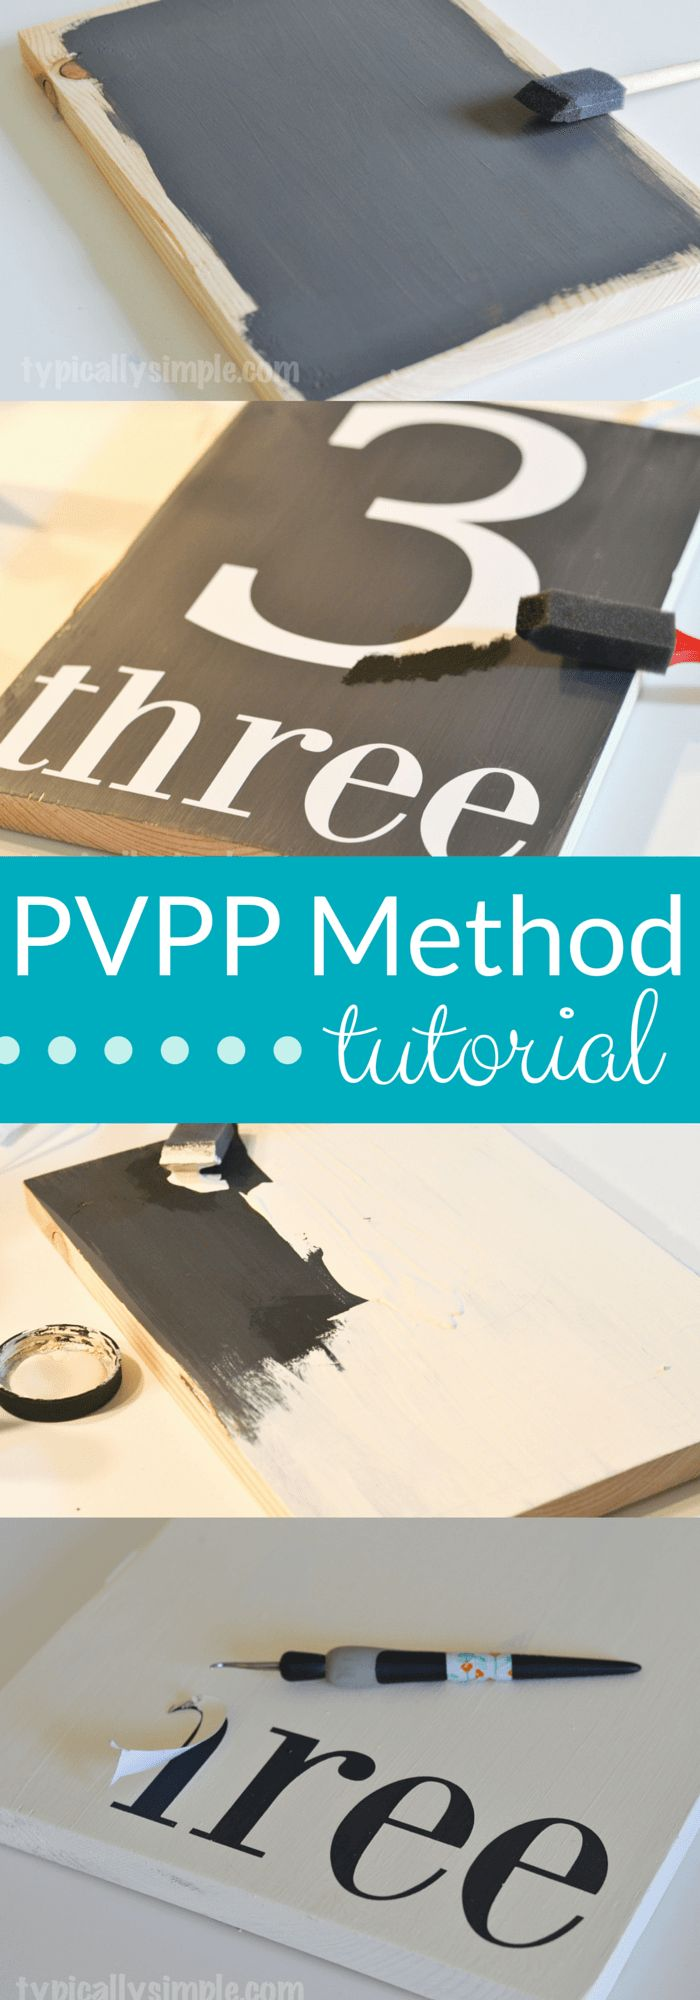 Have you been hearing about the PVPP method? Wondering how it's done? Look no further! Here's a step-by-step tutorial on how to use your Silhouette to create a hand painted sign using the Paint, Vinyl, Paint, Peel method.   TypicallySimple.com